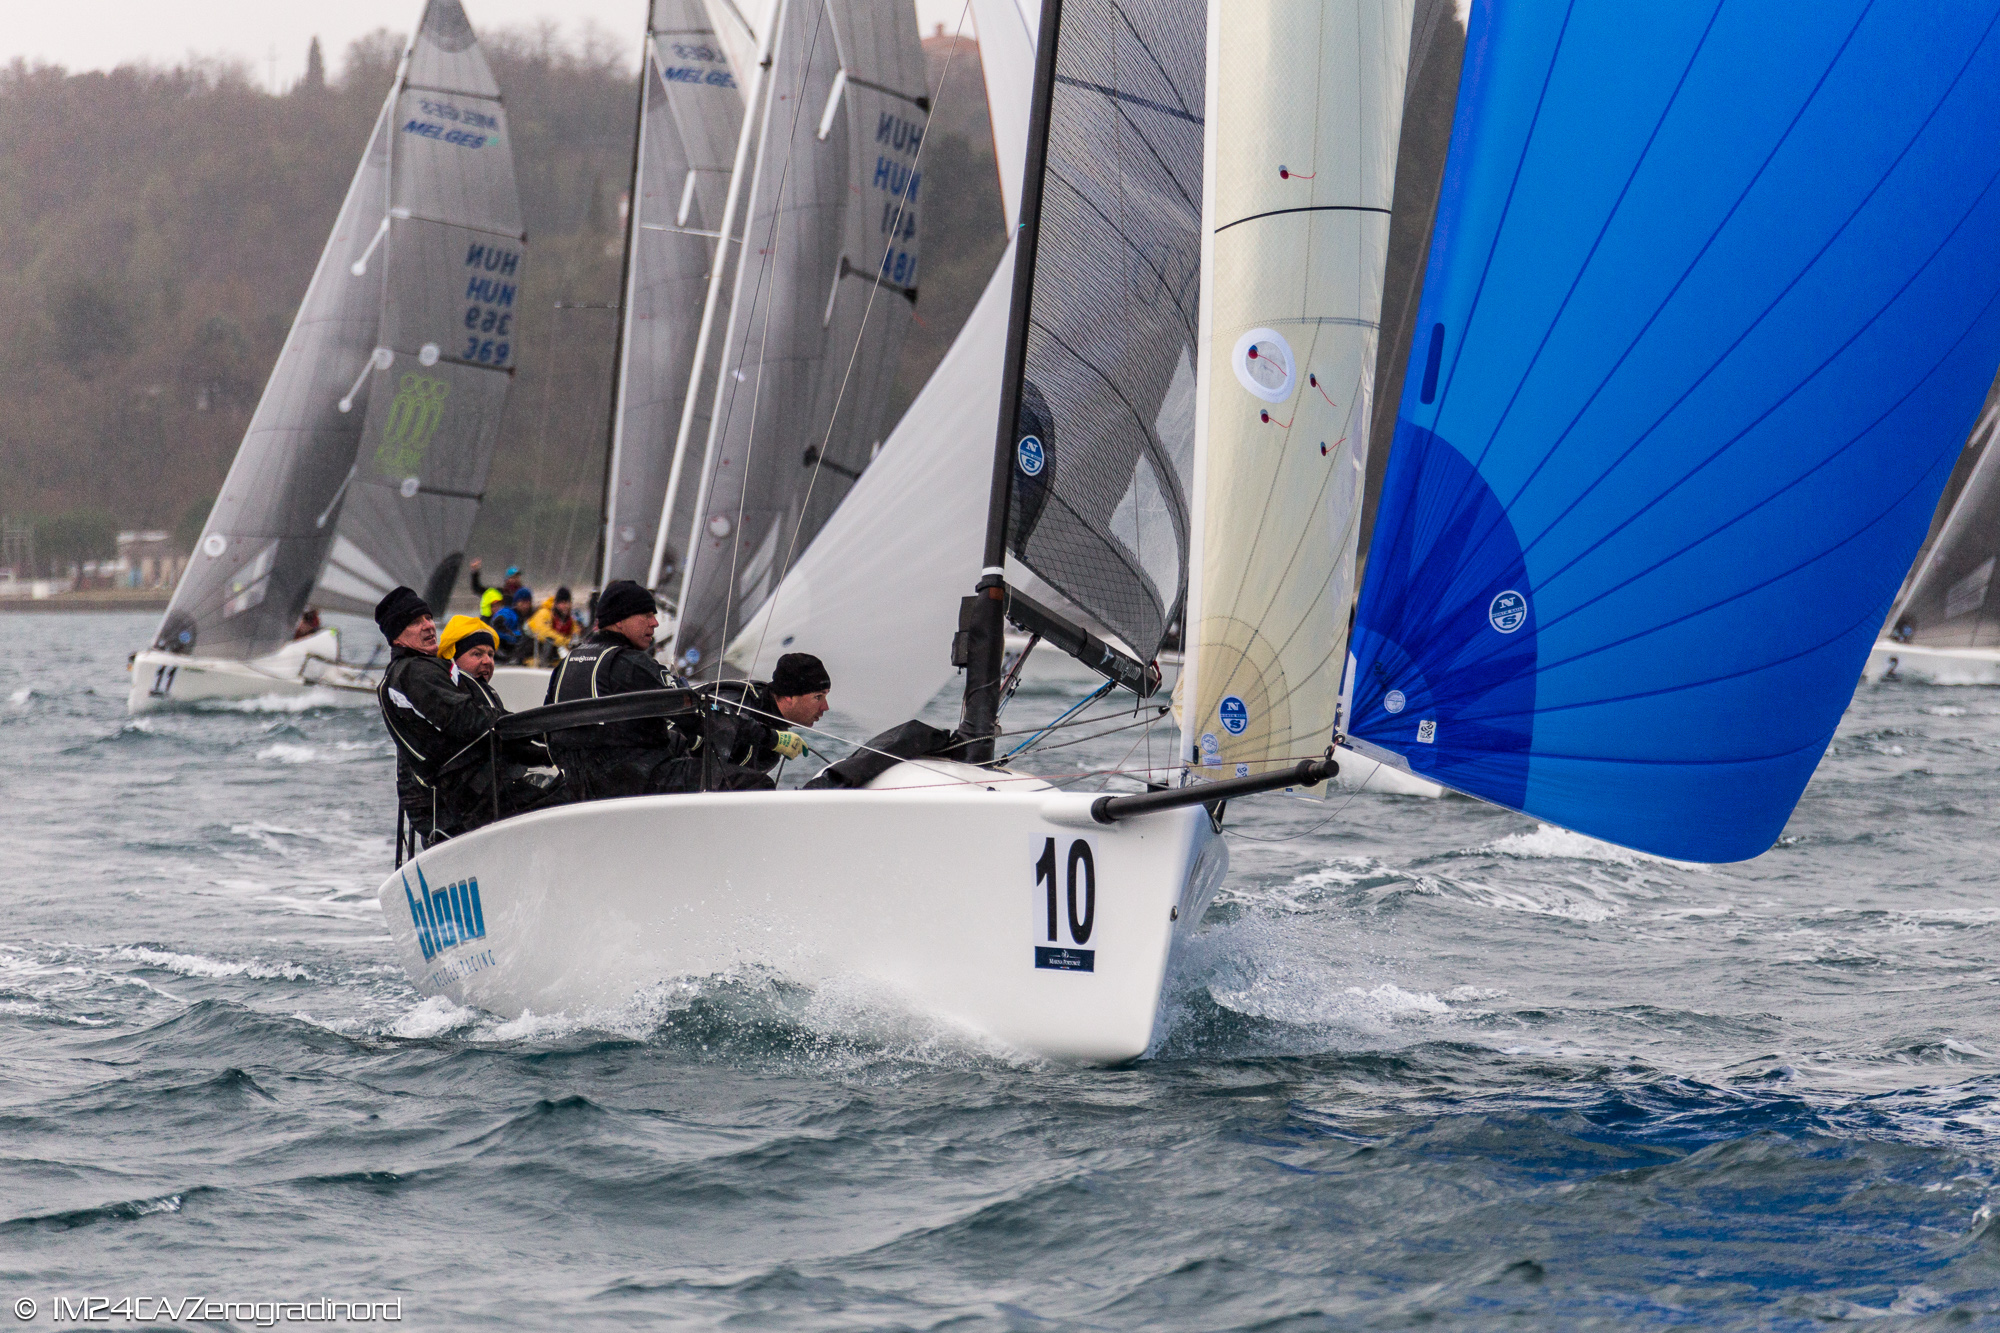 Melges 24 European Sailing Series 2015 - Portoroz, SLO - photo IM24CA/Zerogradin